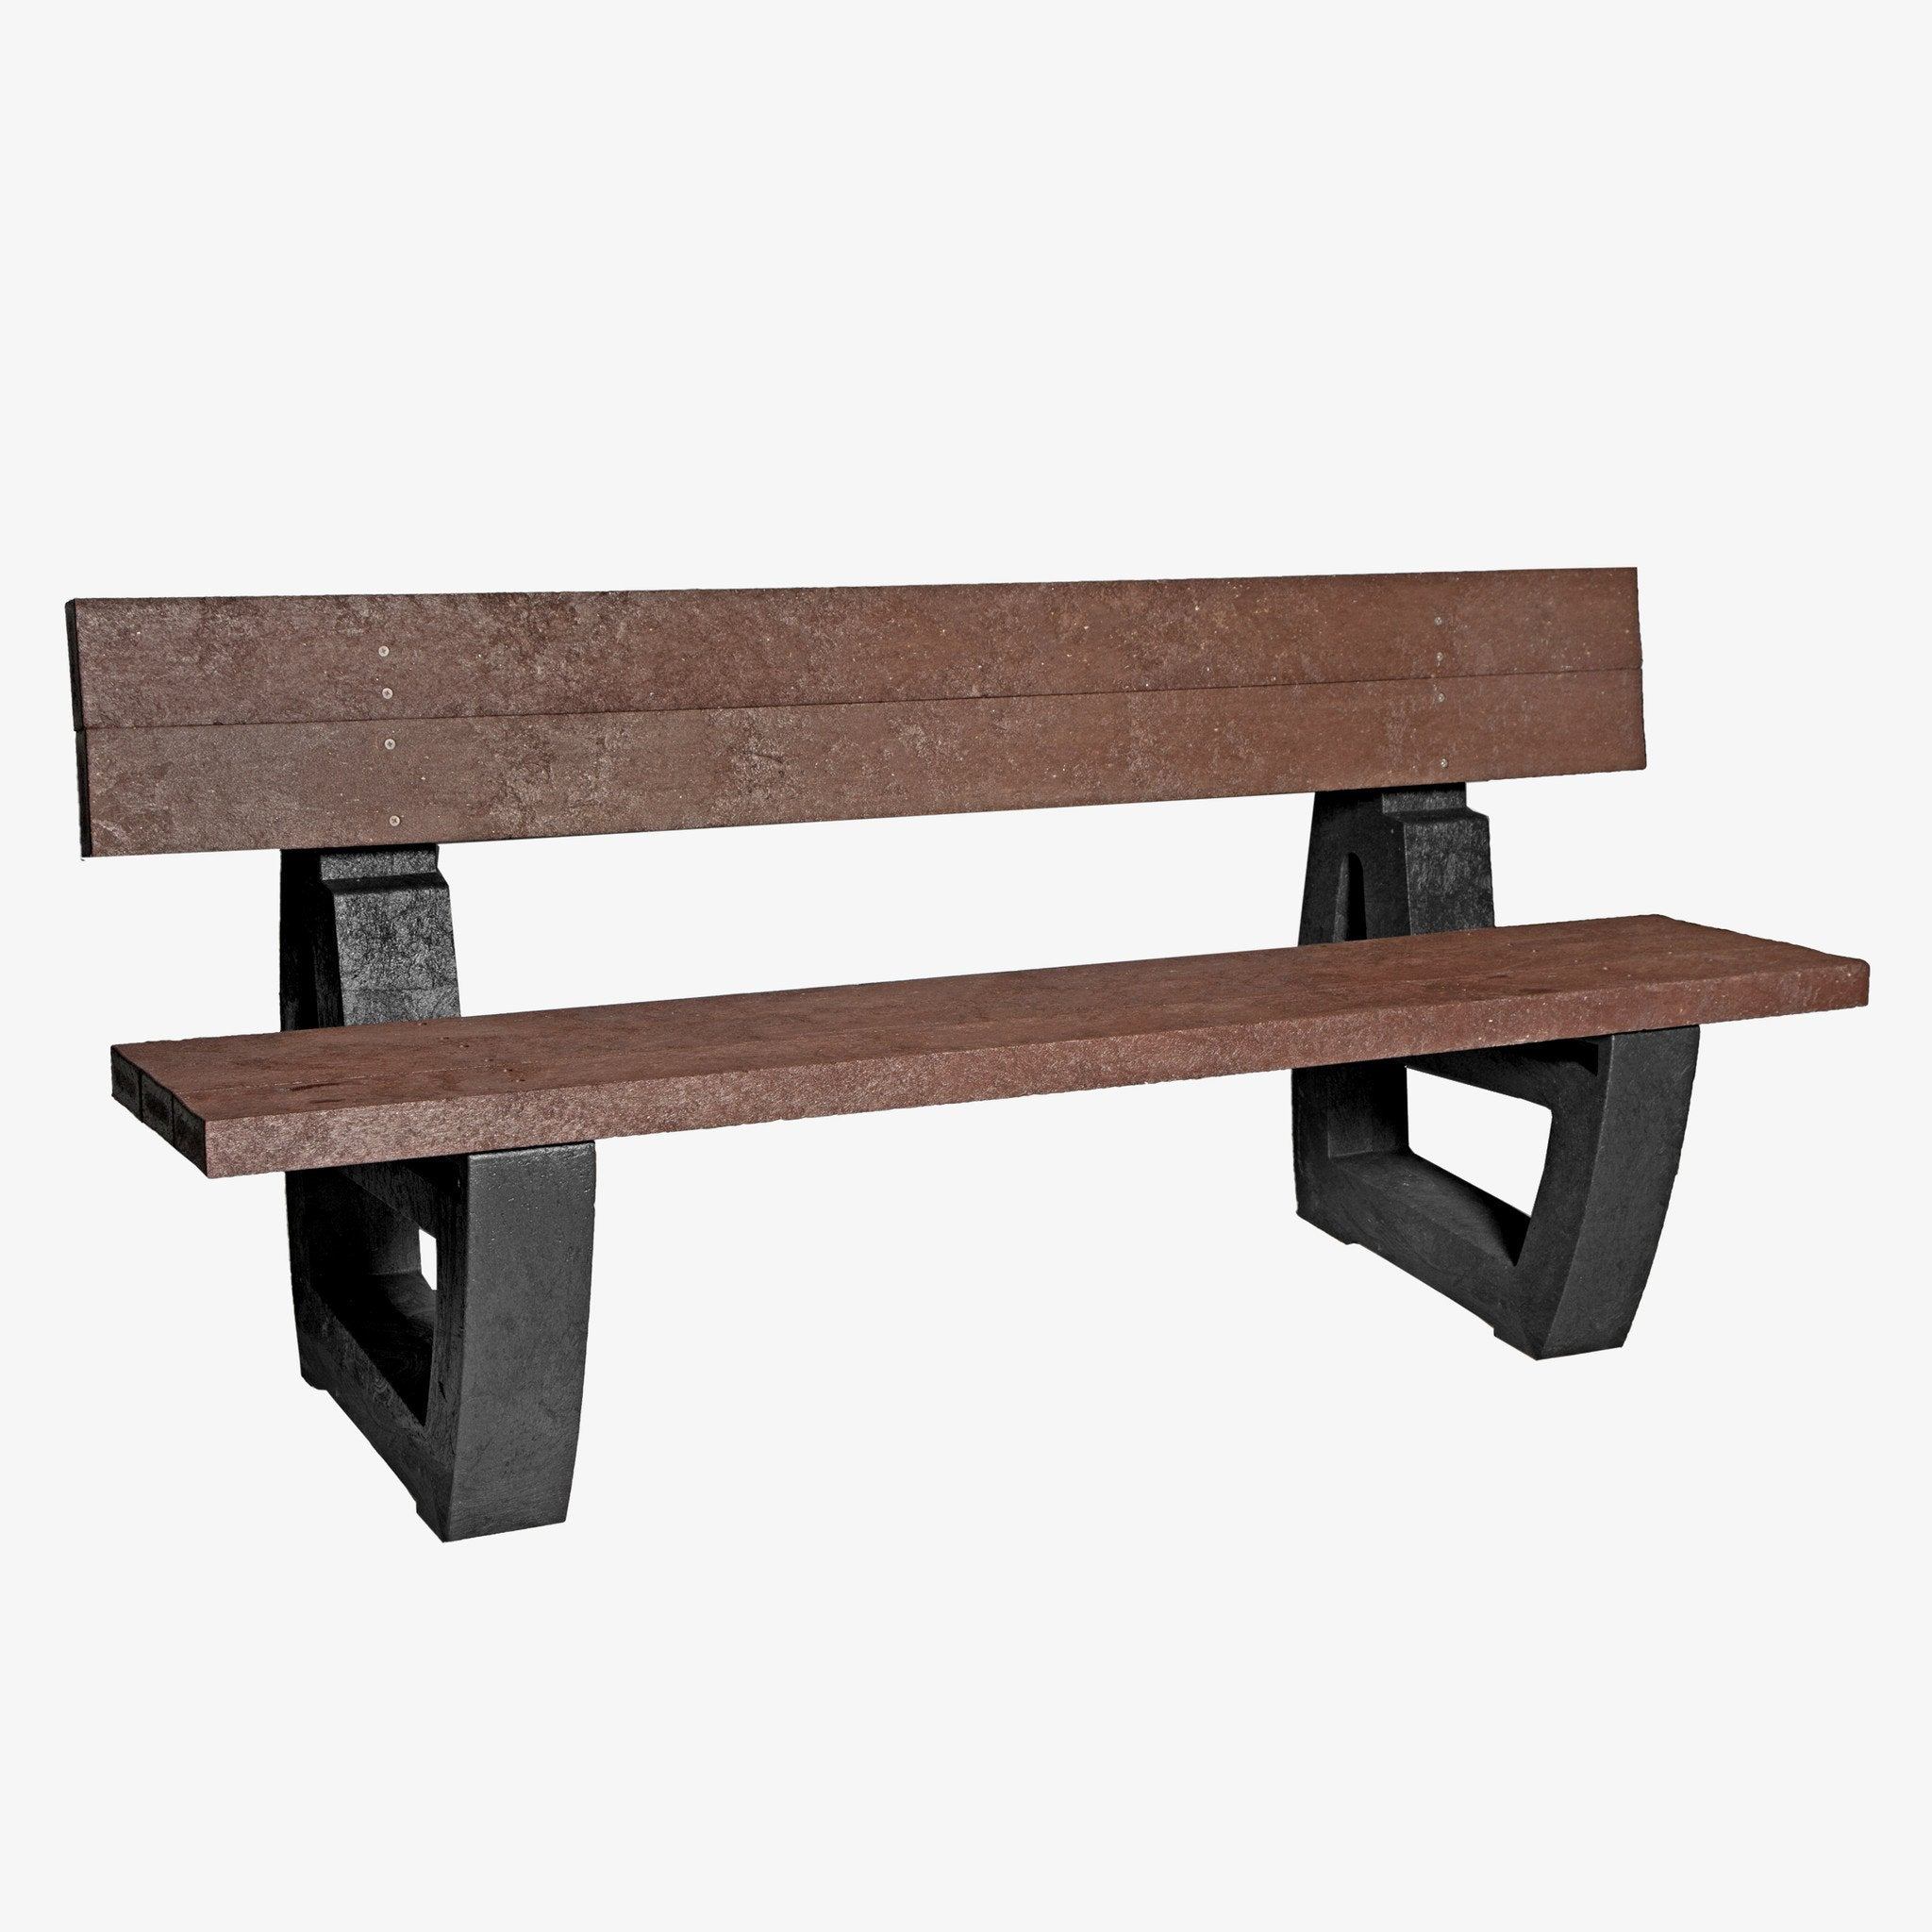 Manticore Lumber black & brown recycled plastic bench